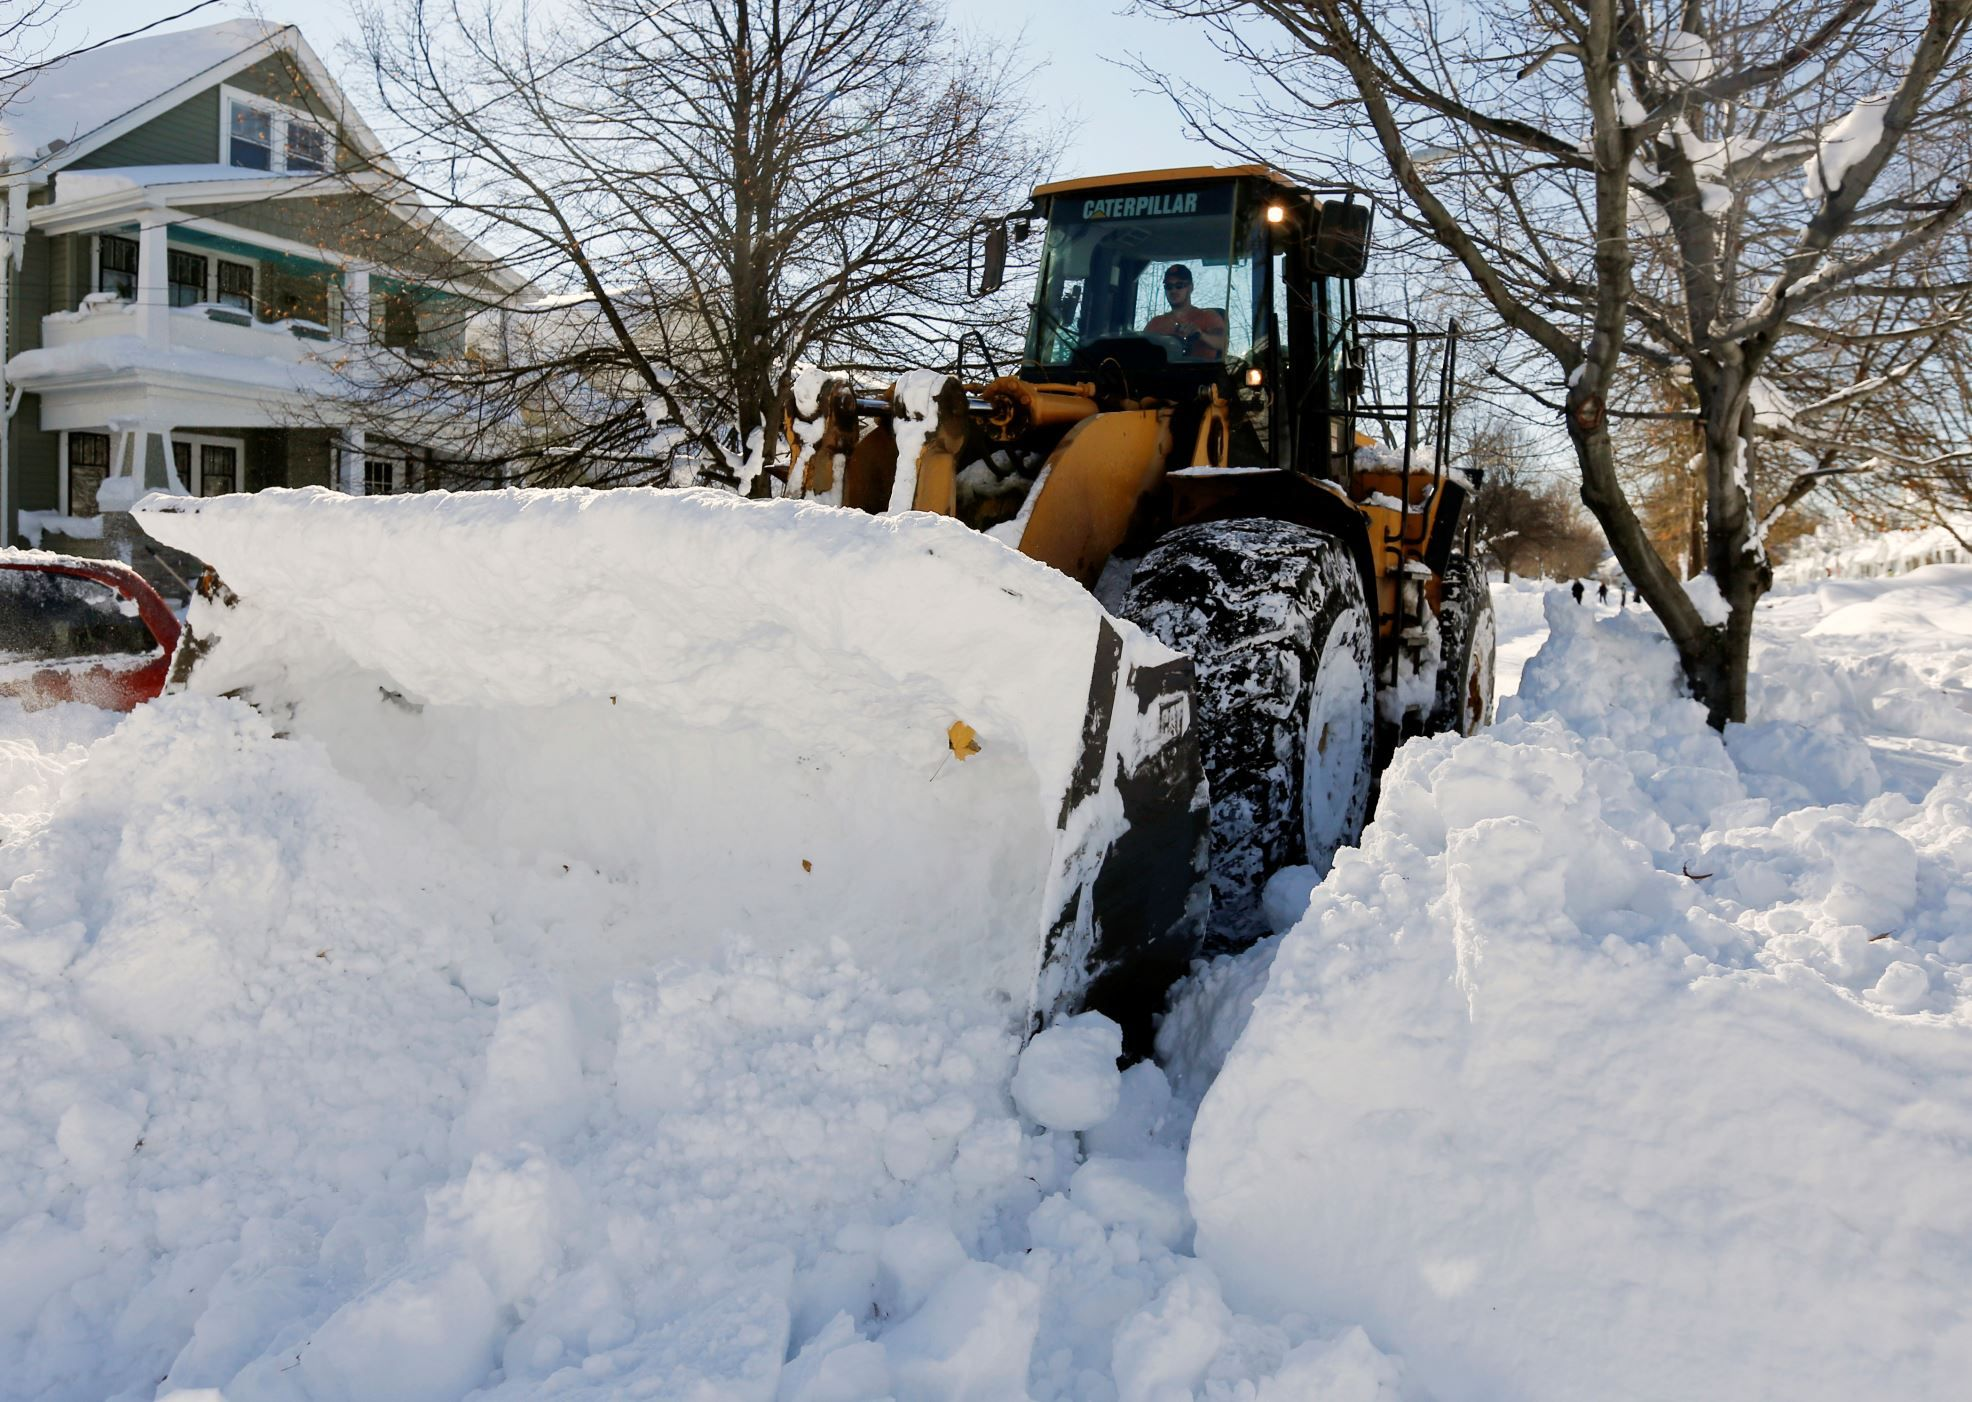 Cold and snow roll across the country. A front loader